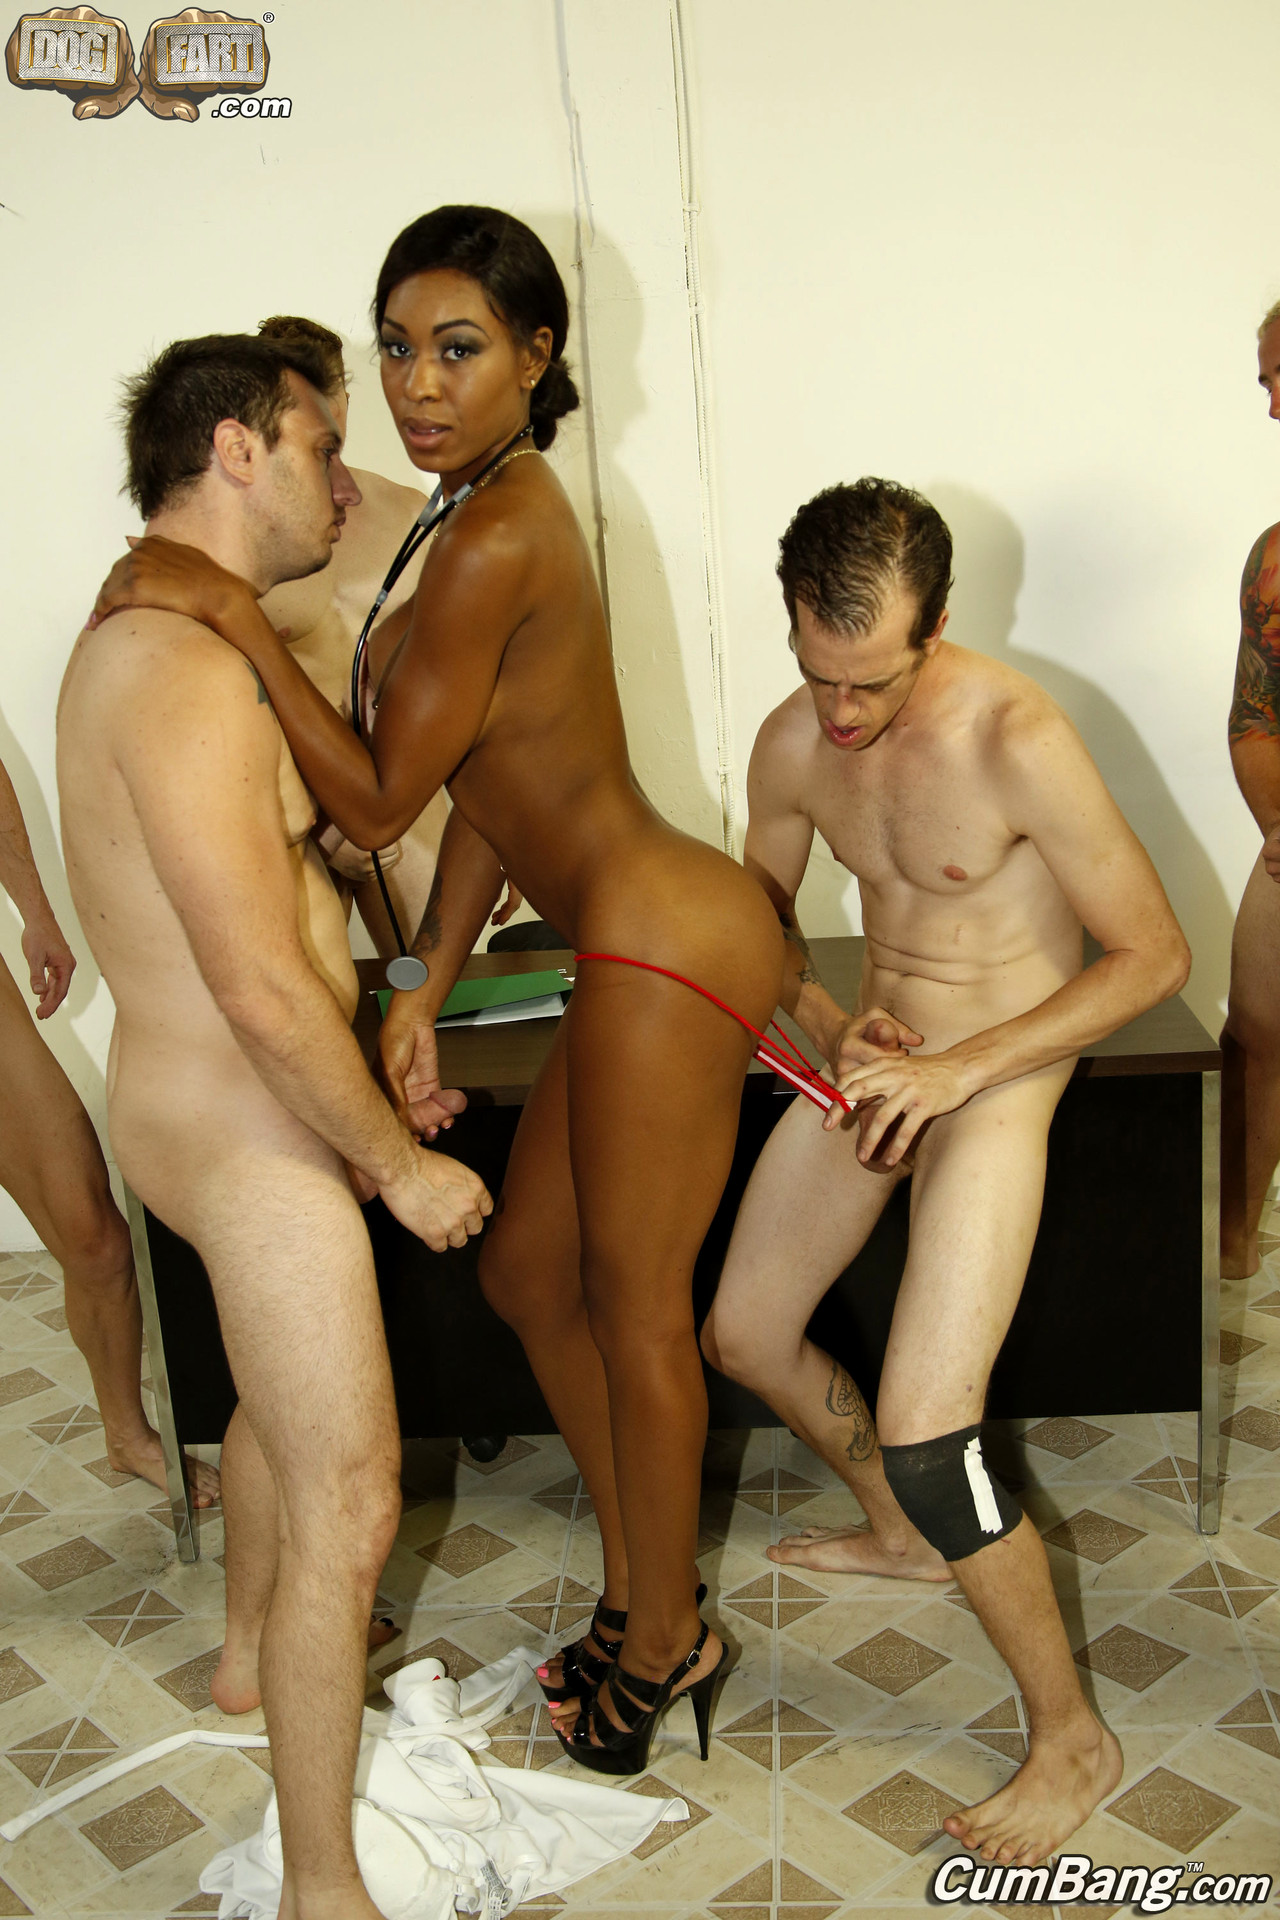 Sophie dee interracial fucked - 3 4